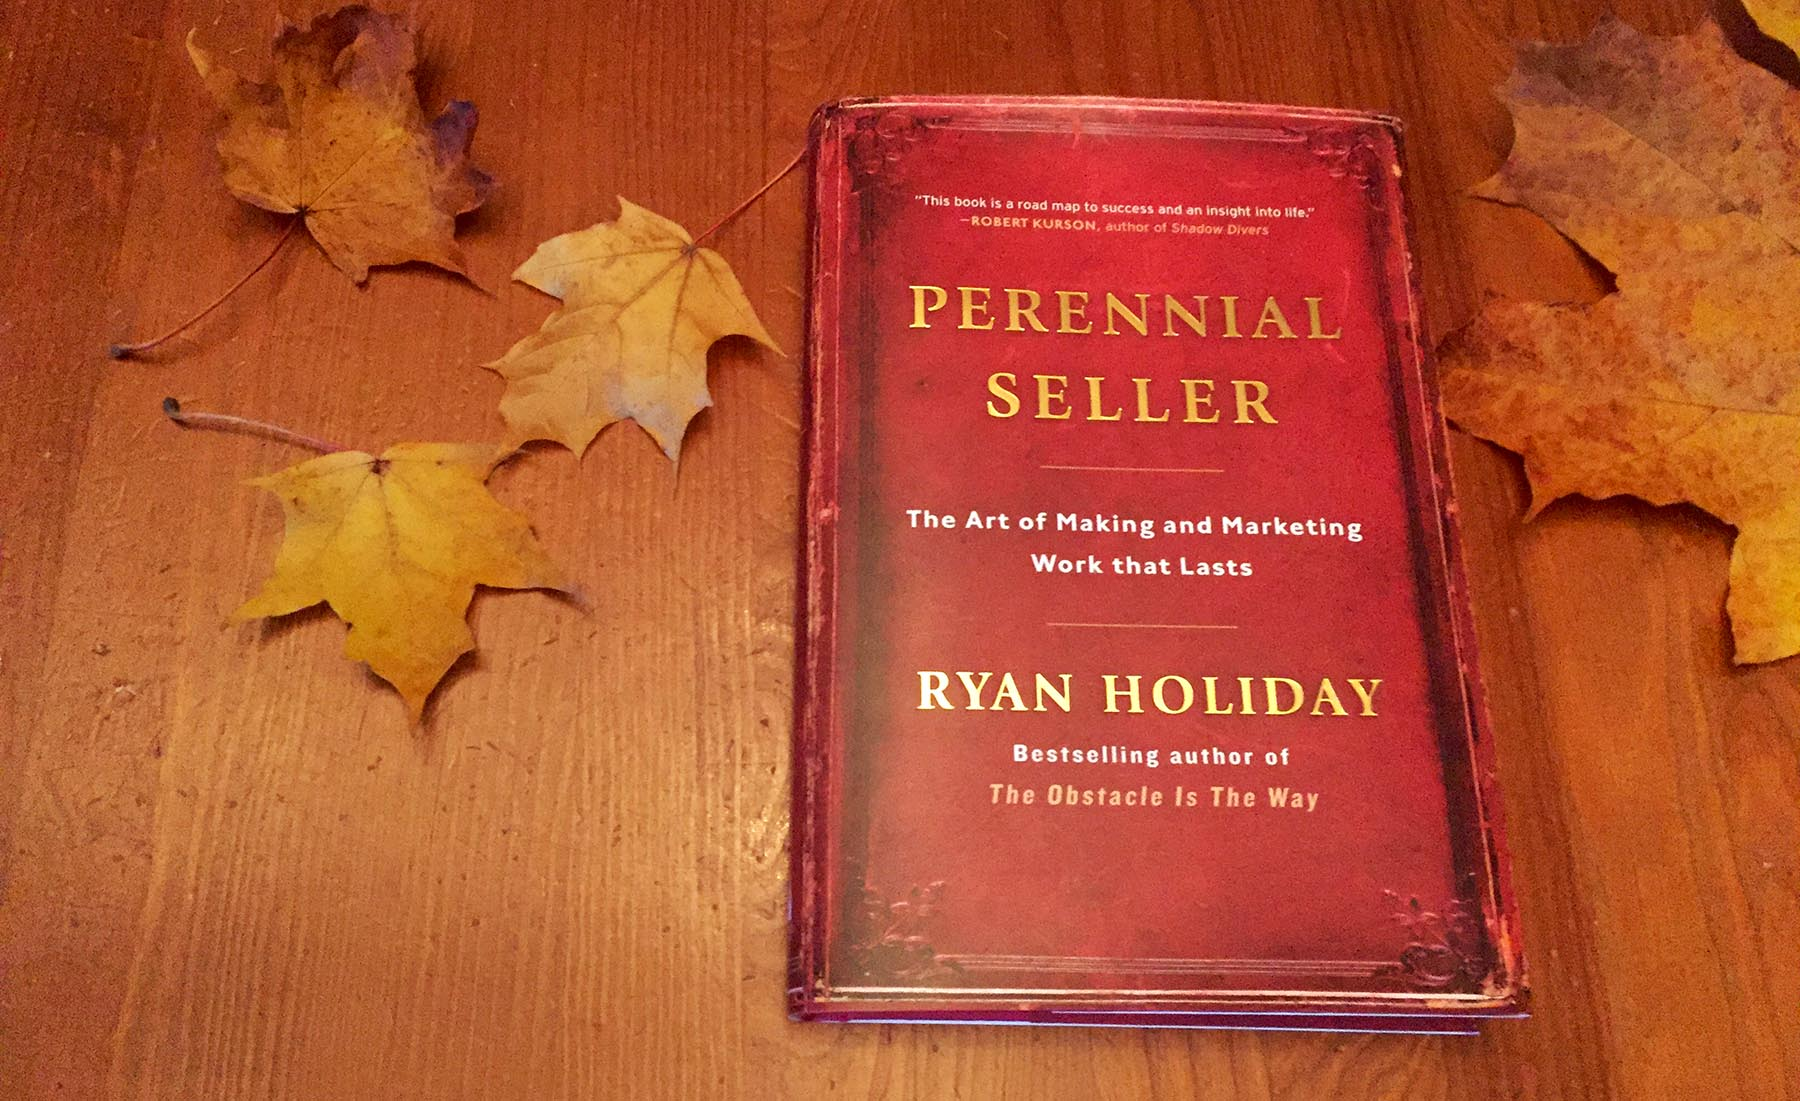 Perennial Seller by Ryan Holiday – My 5 Star Book Review